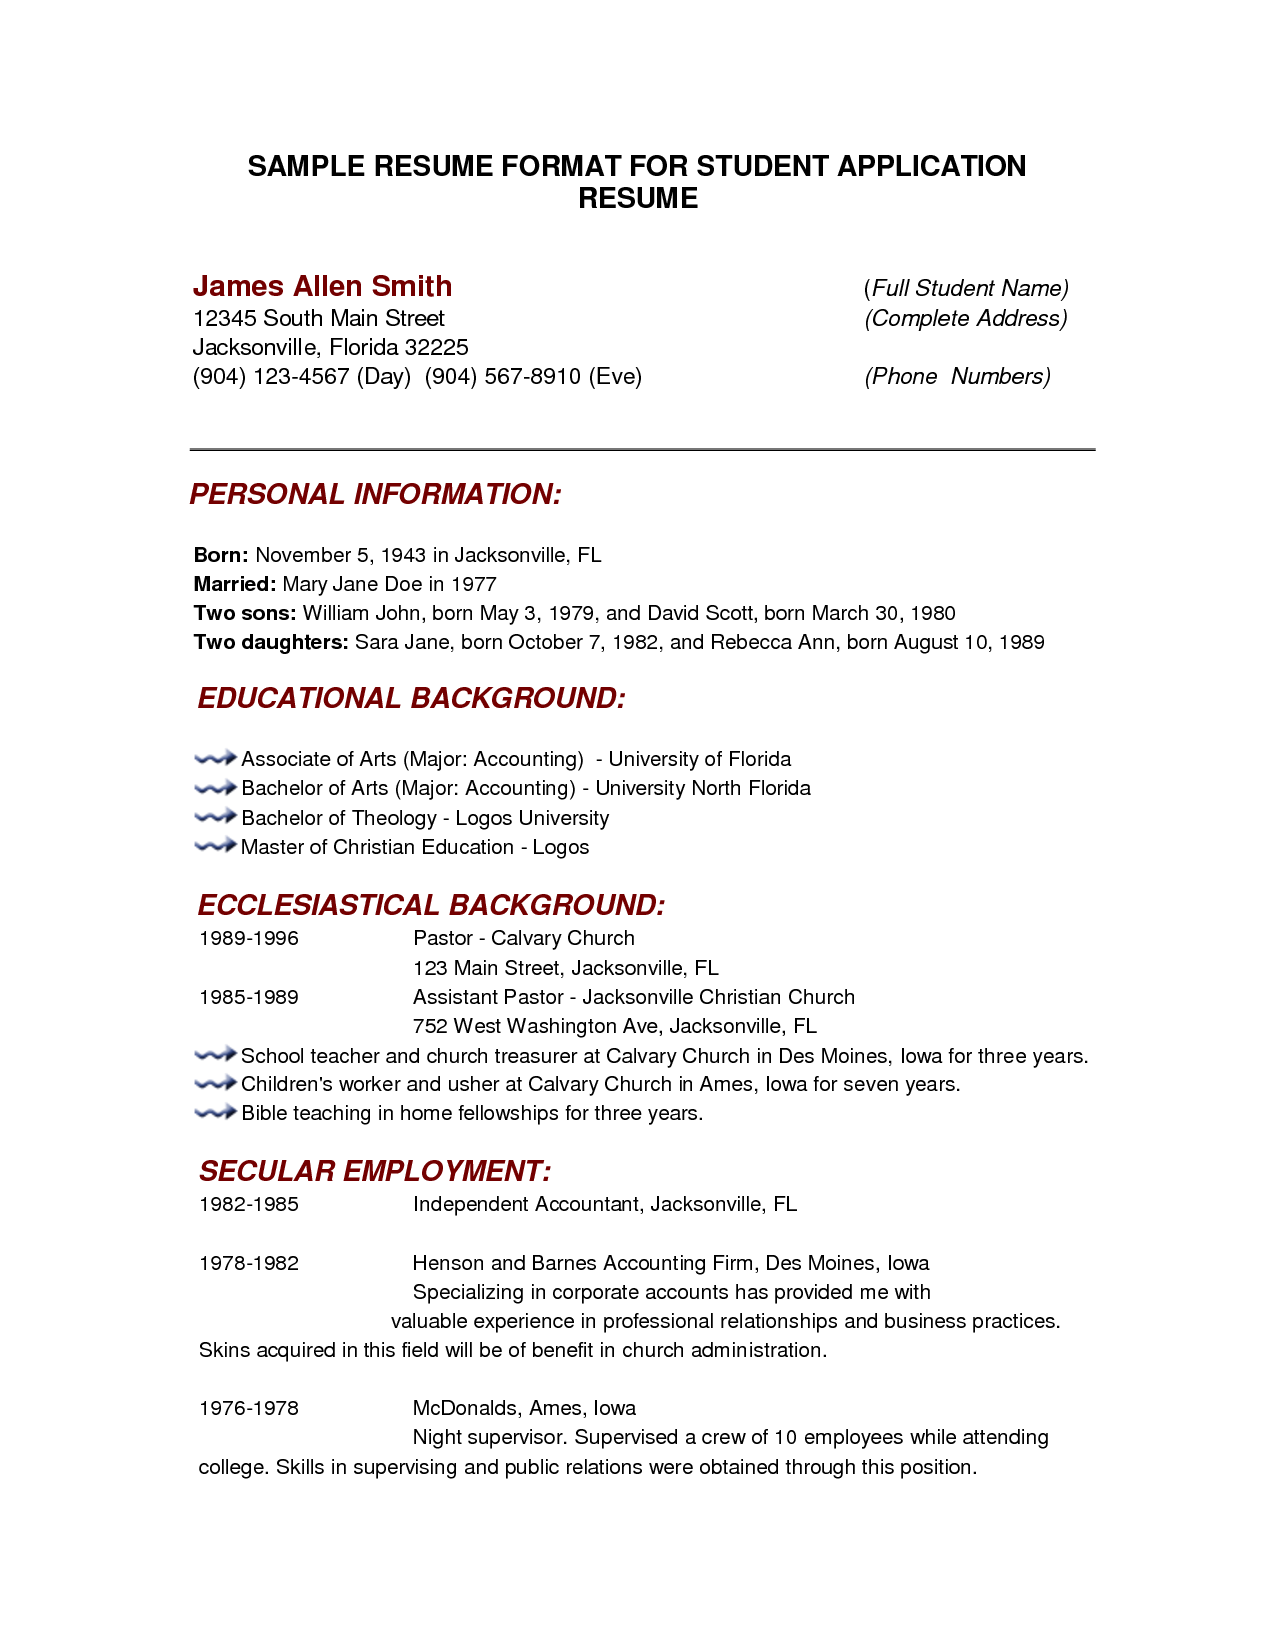 Example Of Resume Format For Student